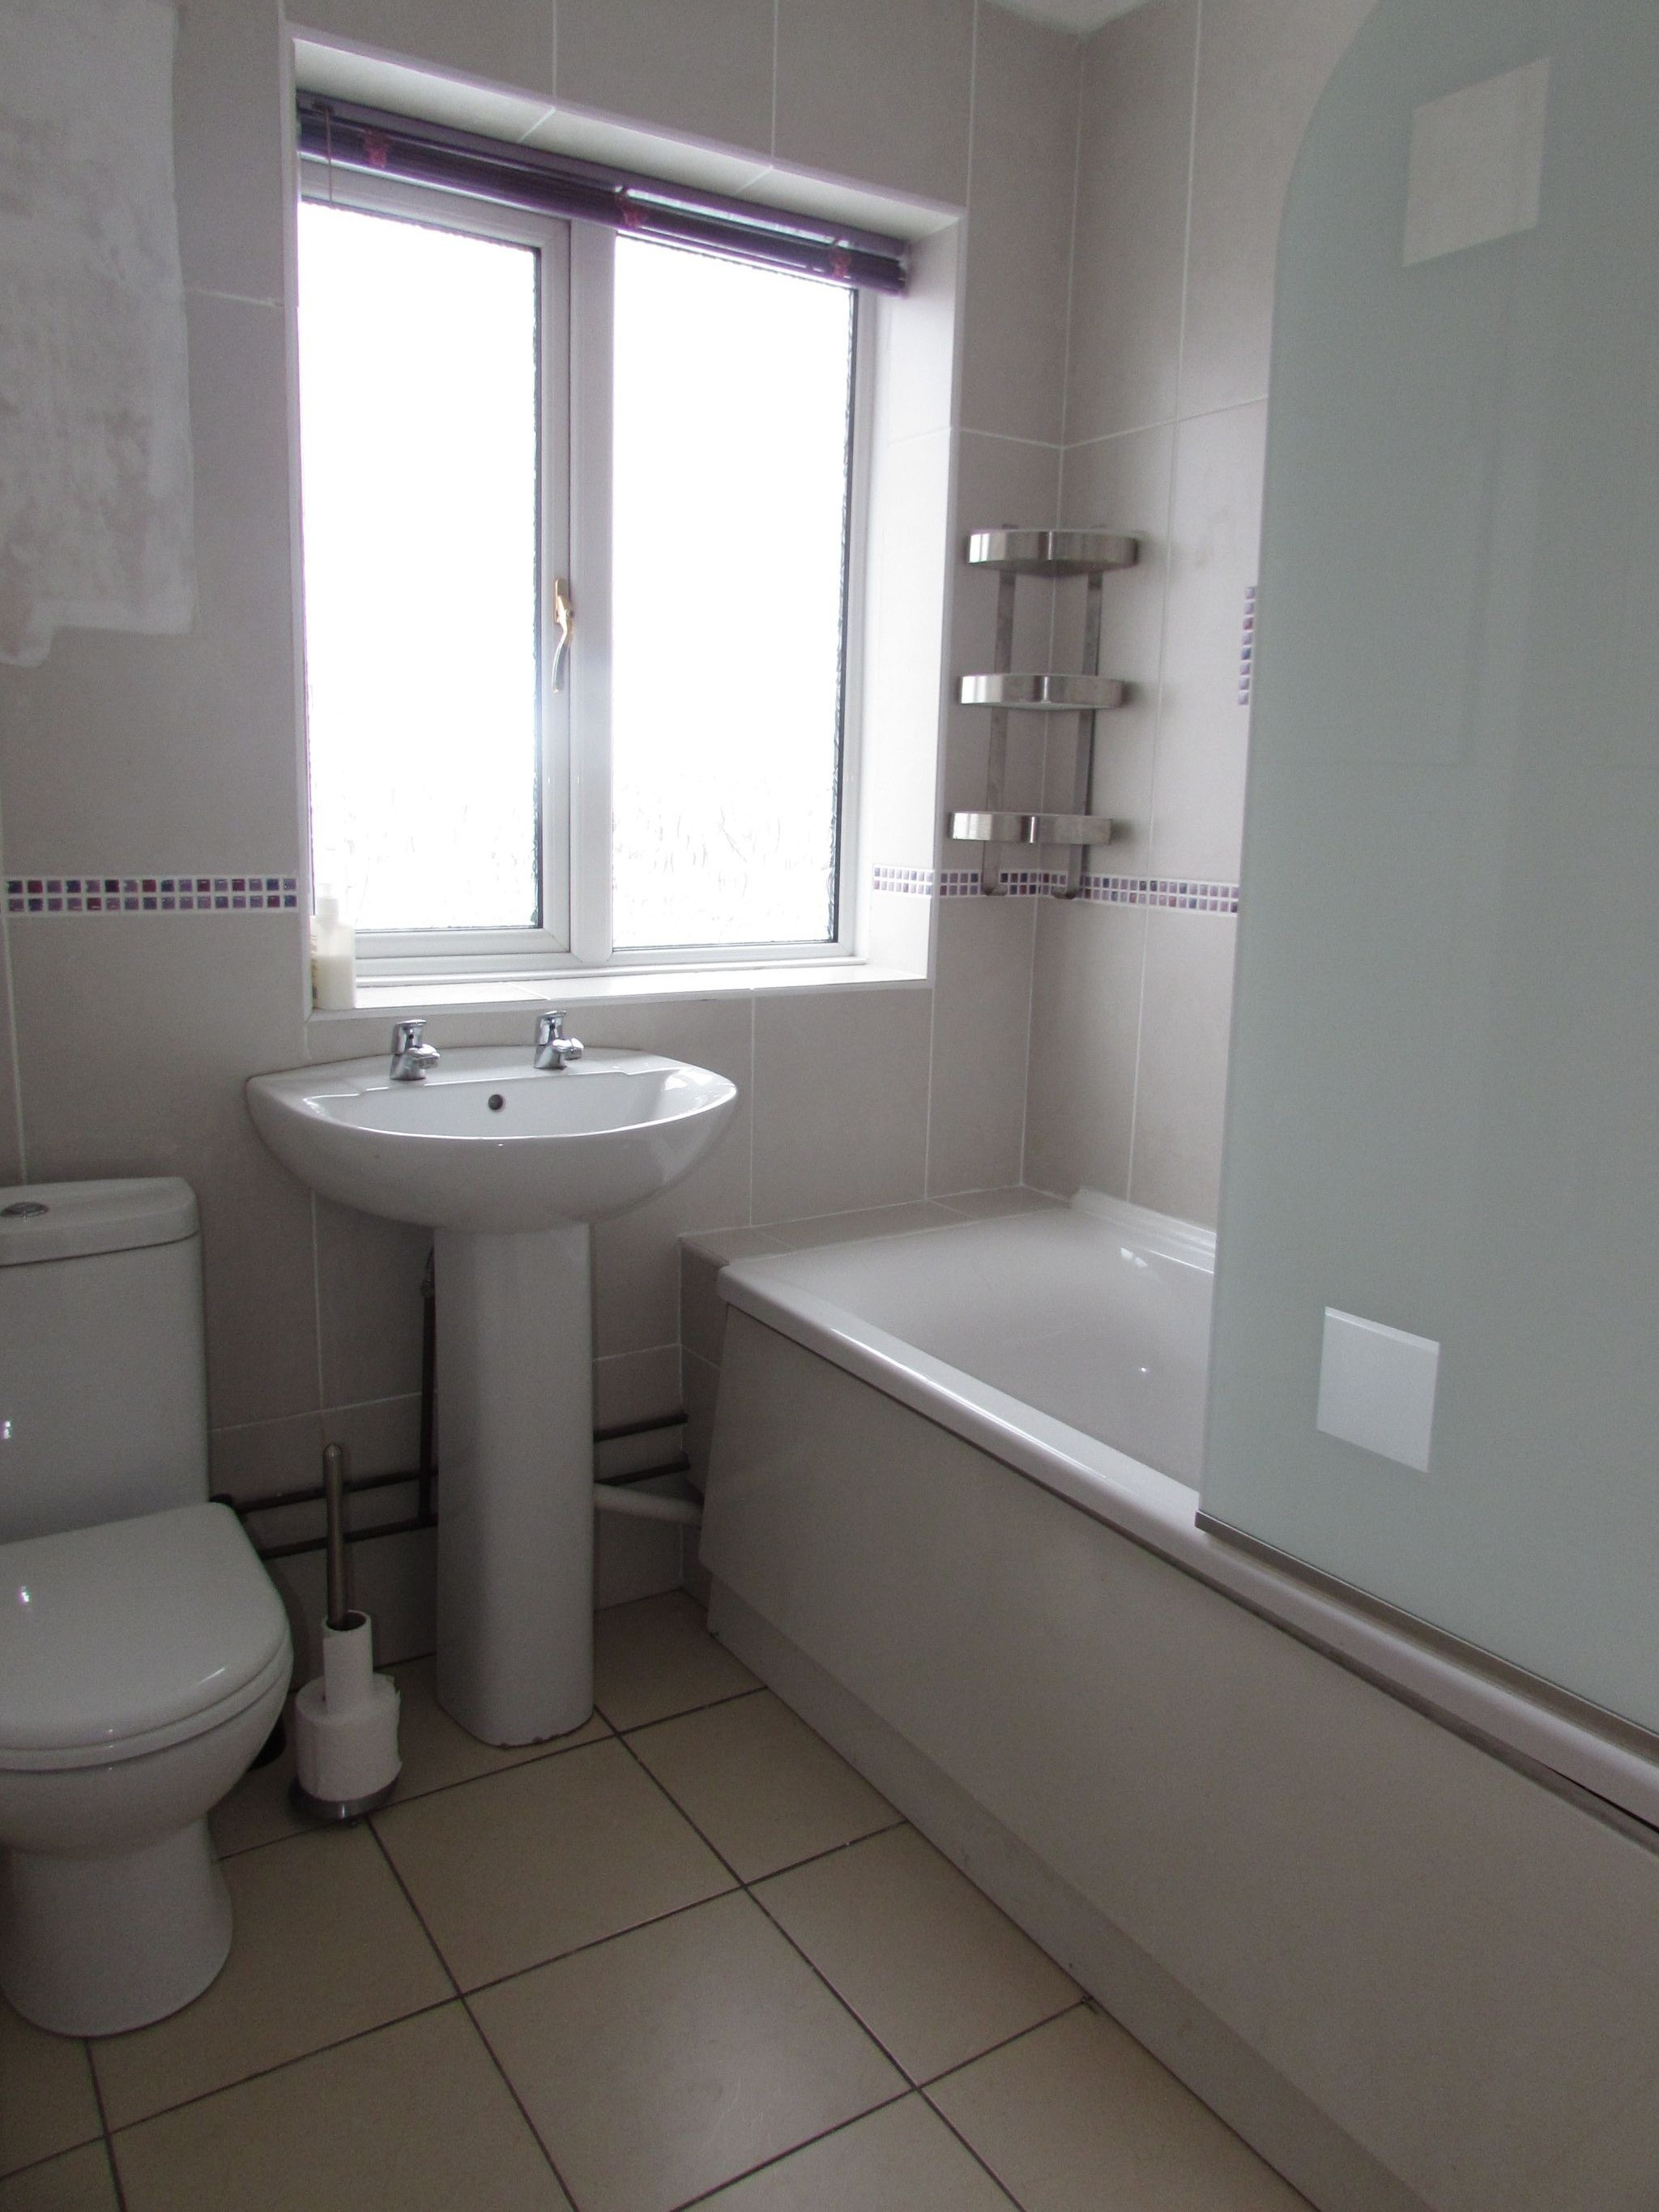 4 Bedroom End Terraced House To Rent - Bathroom